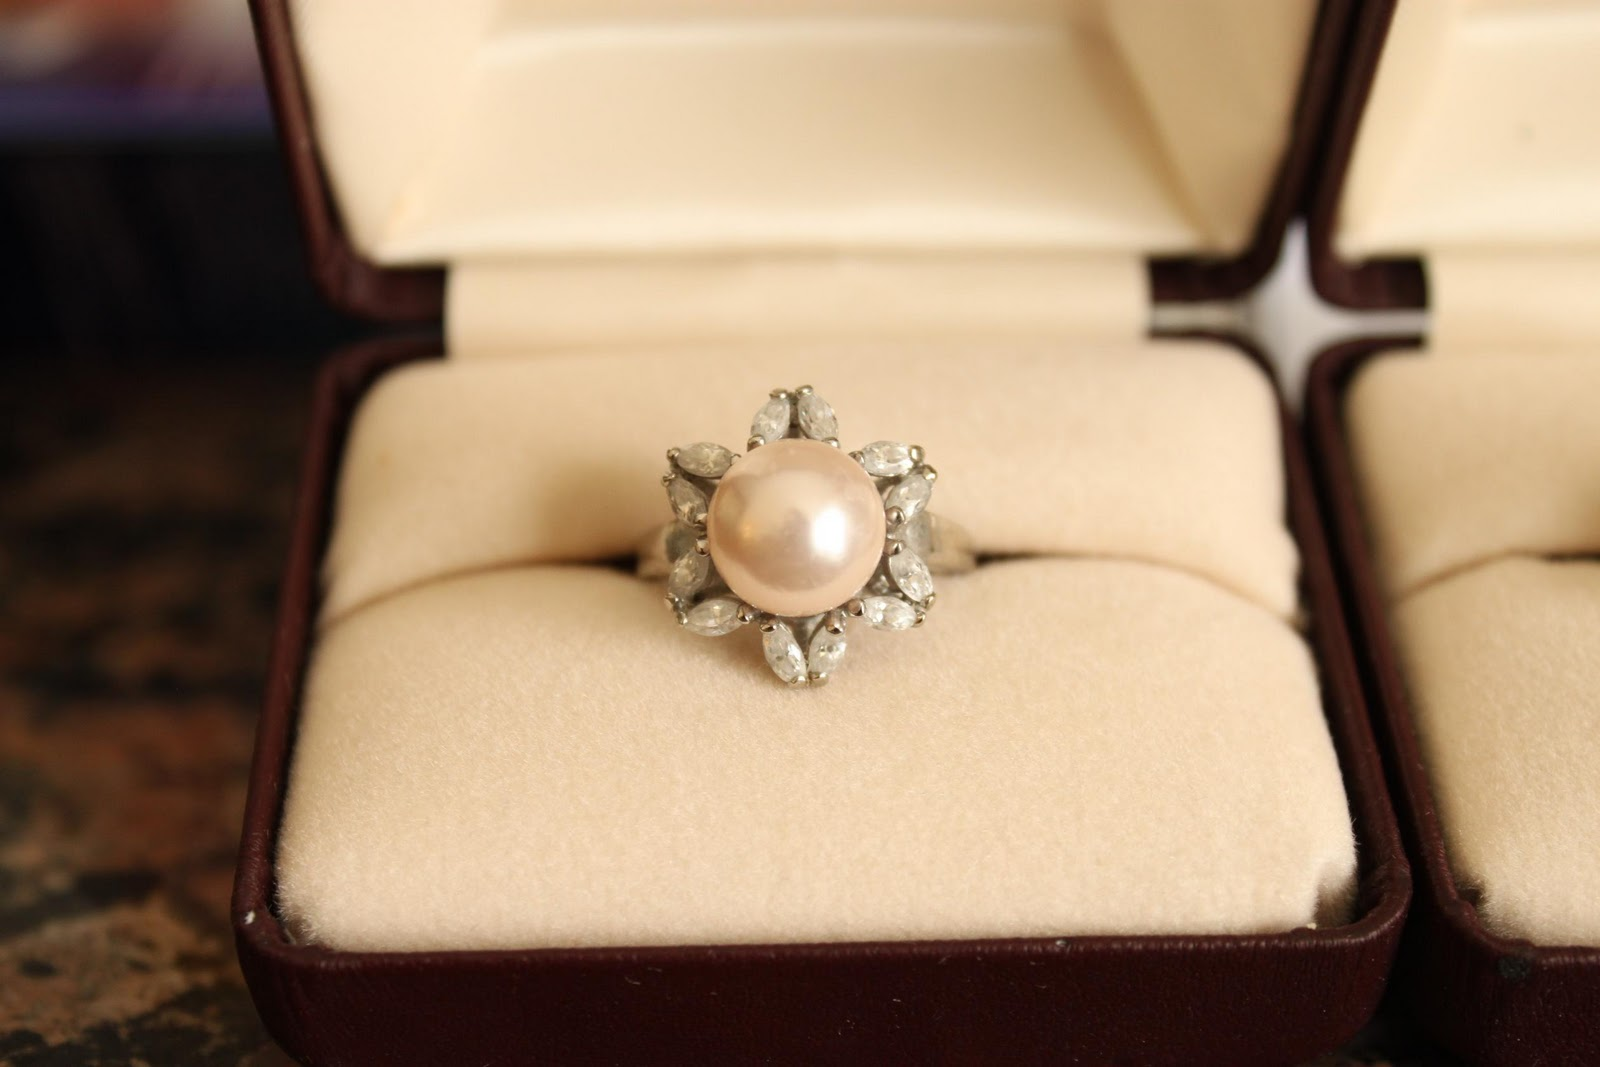 The Lovely Wife In The Photograph Was Wearing The Most Fabulous Pearl Ring,  Evah! I Wanted One This Is What I Got